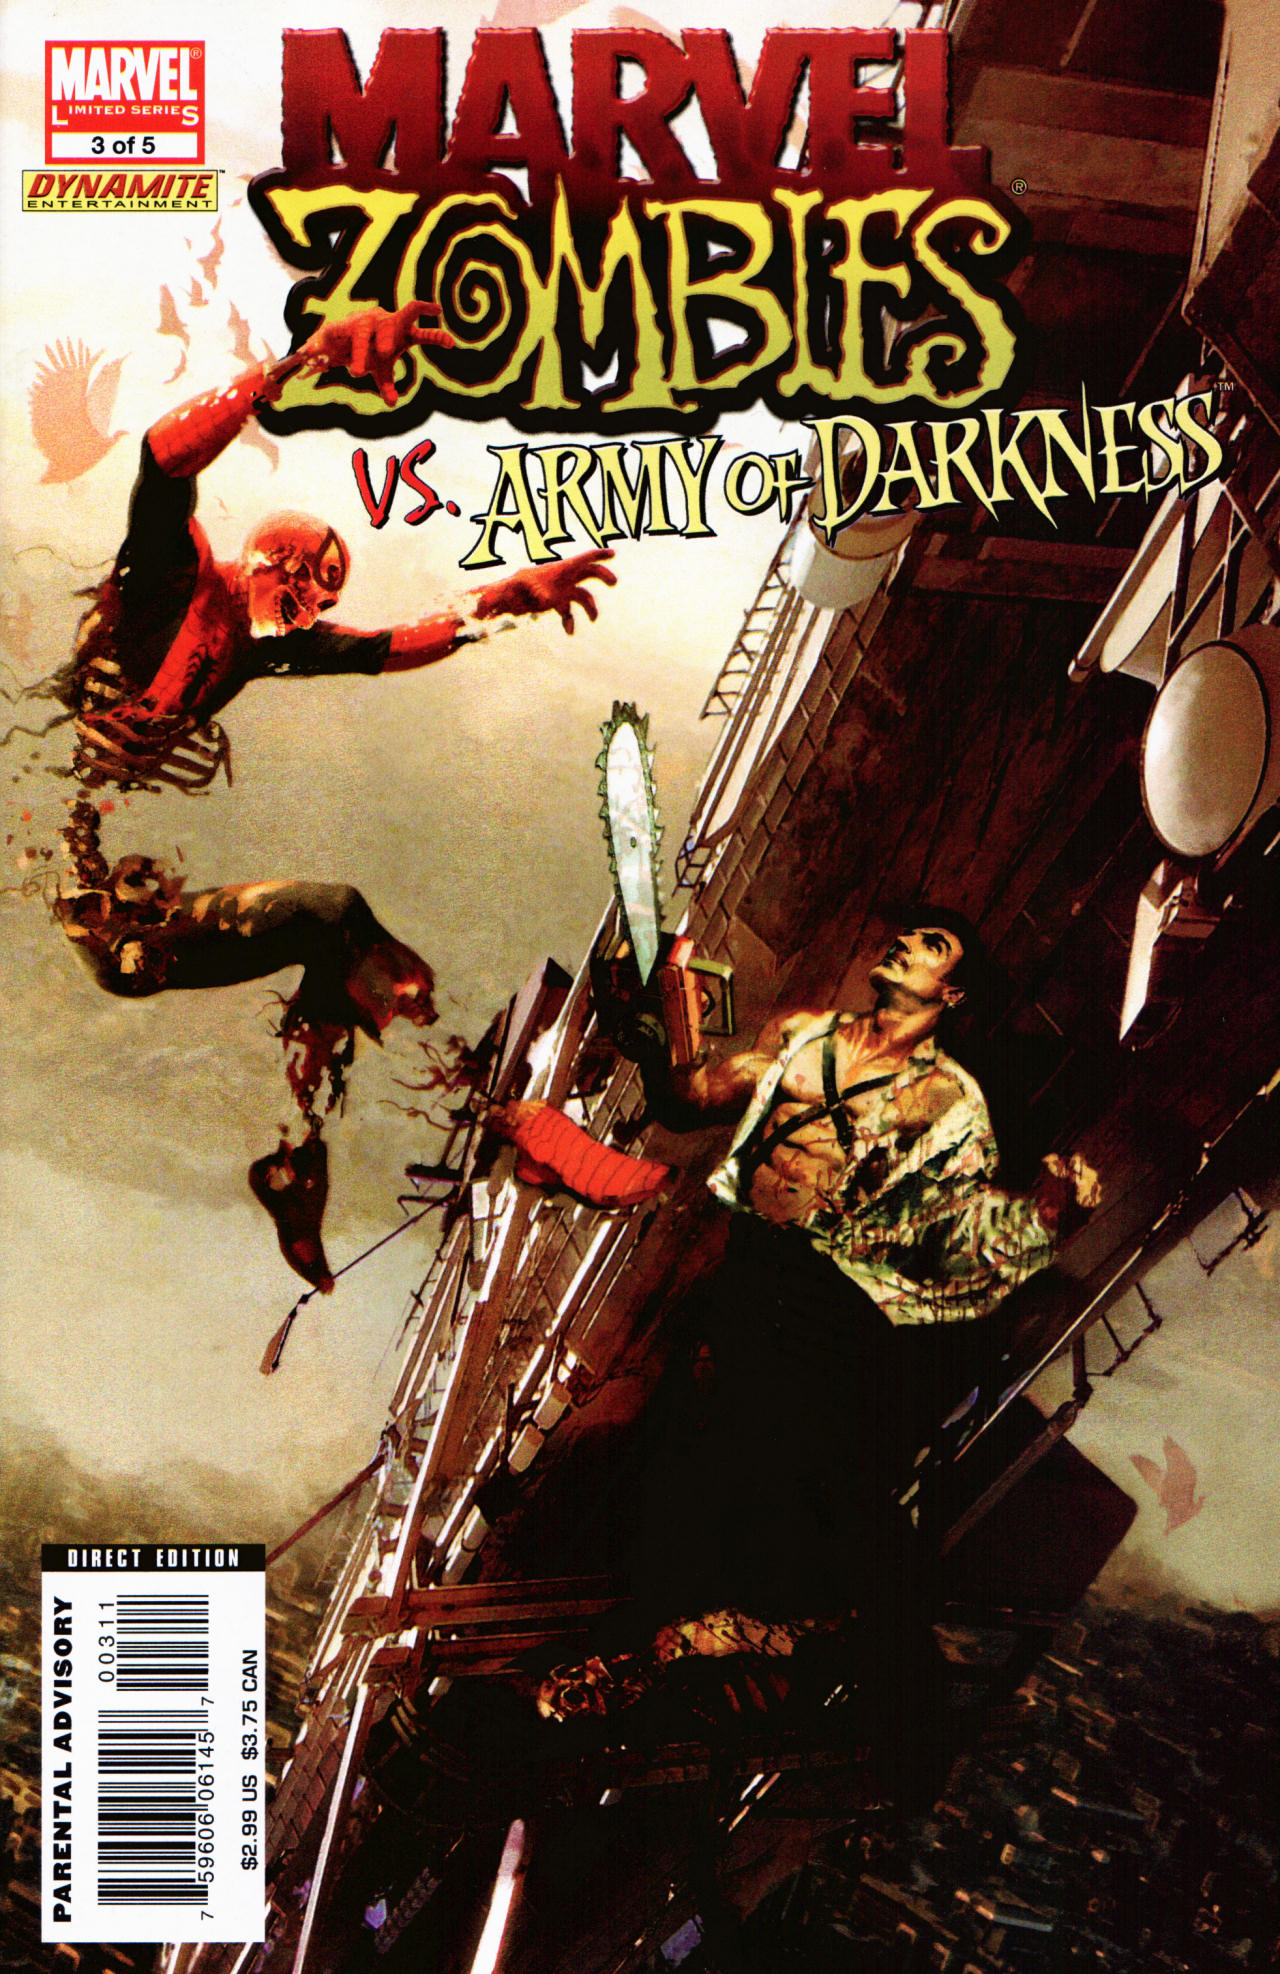 Marvel Zombies/Army of Darkness Vol 1 3